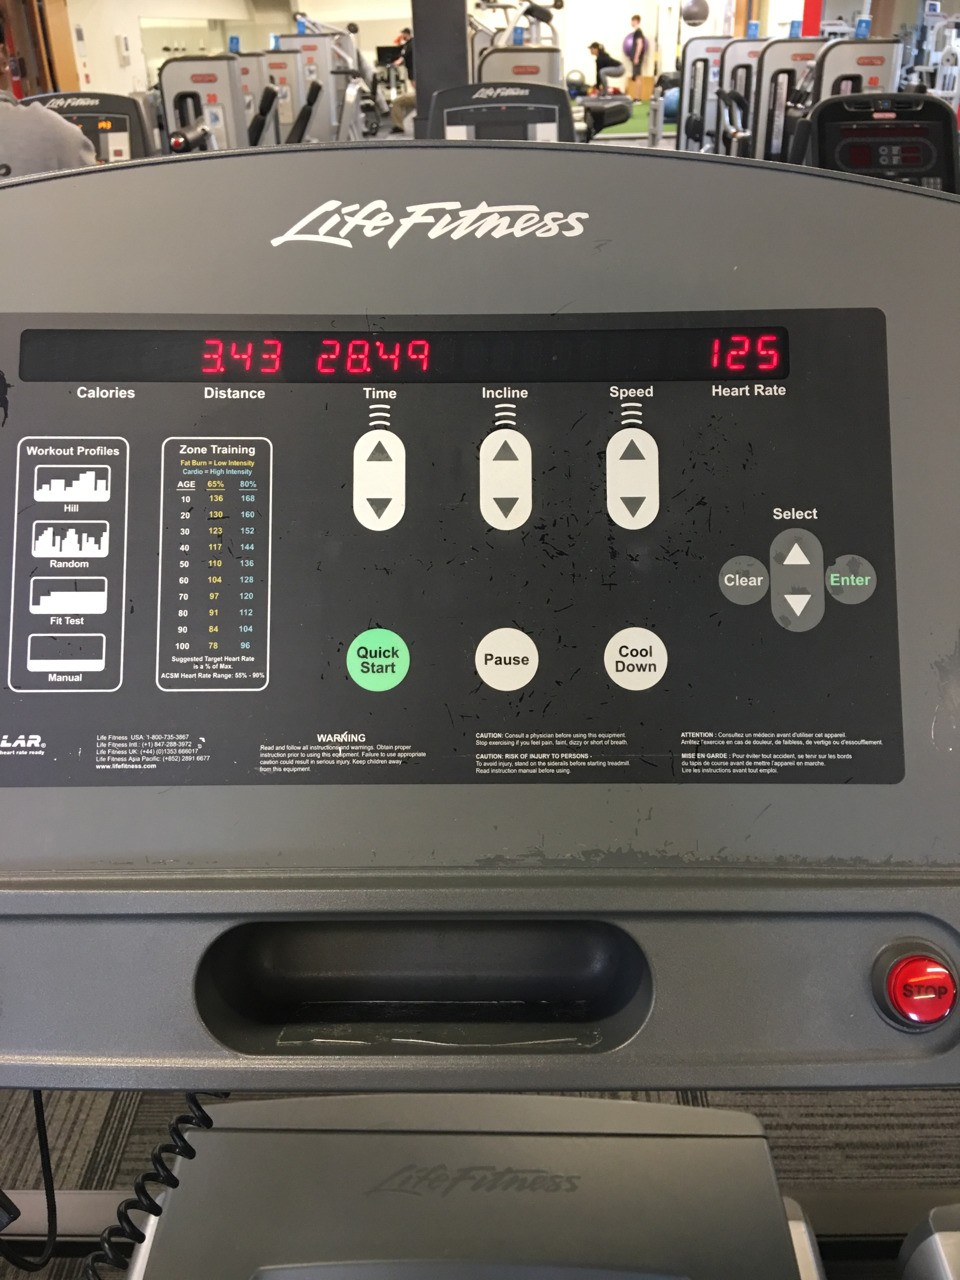 Today I got to experience the gym for the first time, and I thought I'd share this in adventure because of this reason. Me and Panda hit the gym after uni and did a cardio set, ran on the treadmill for 28 minutes and pulled a 3.4km run. Running on a treadmill was so much more fun and harder than I anticipated. I've only run on a treadmill a few times before and hadn't experienced it in a long time. Being able to make yourself hold a pace and being and able to see the km's go up and the time was a nice feeling, being to physically see progress. Another thing I enjoyed about the gym was that I didn't have to run in the cold, smallest details added up and hitting the gym was nice to break a sweat and feel like I had accomplished something for the day, in a way I had never done before. It was a great first time and hitting the gym with Panda made it so much better, both progressing in our journey. - Mermaid